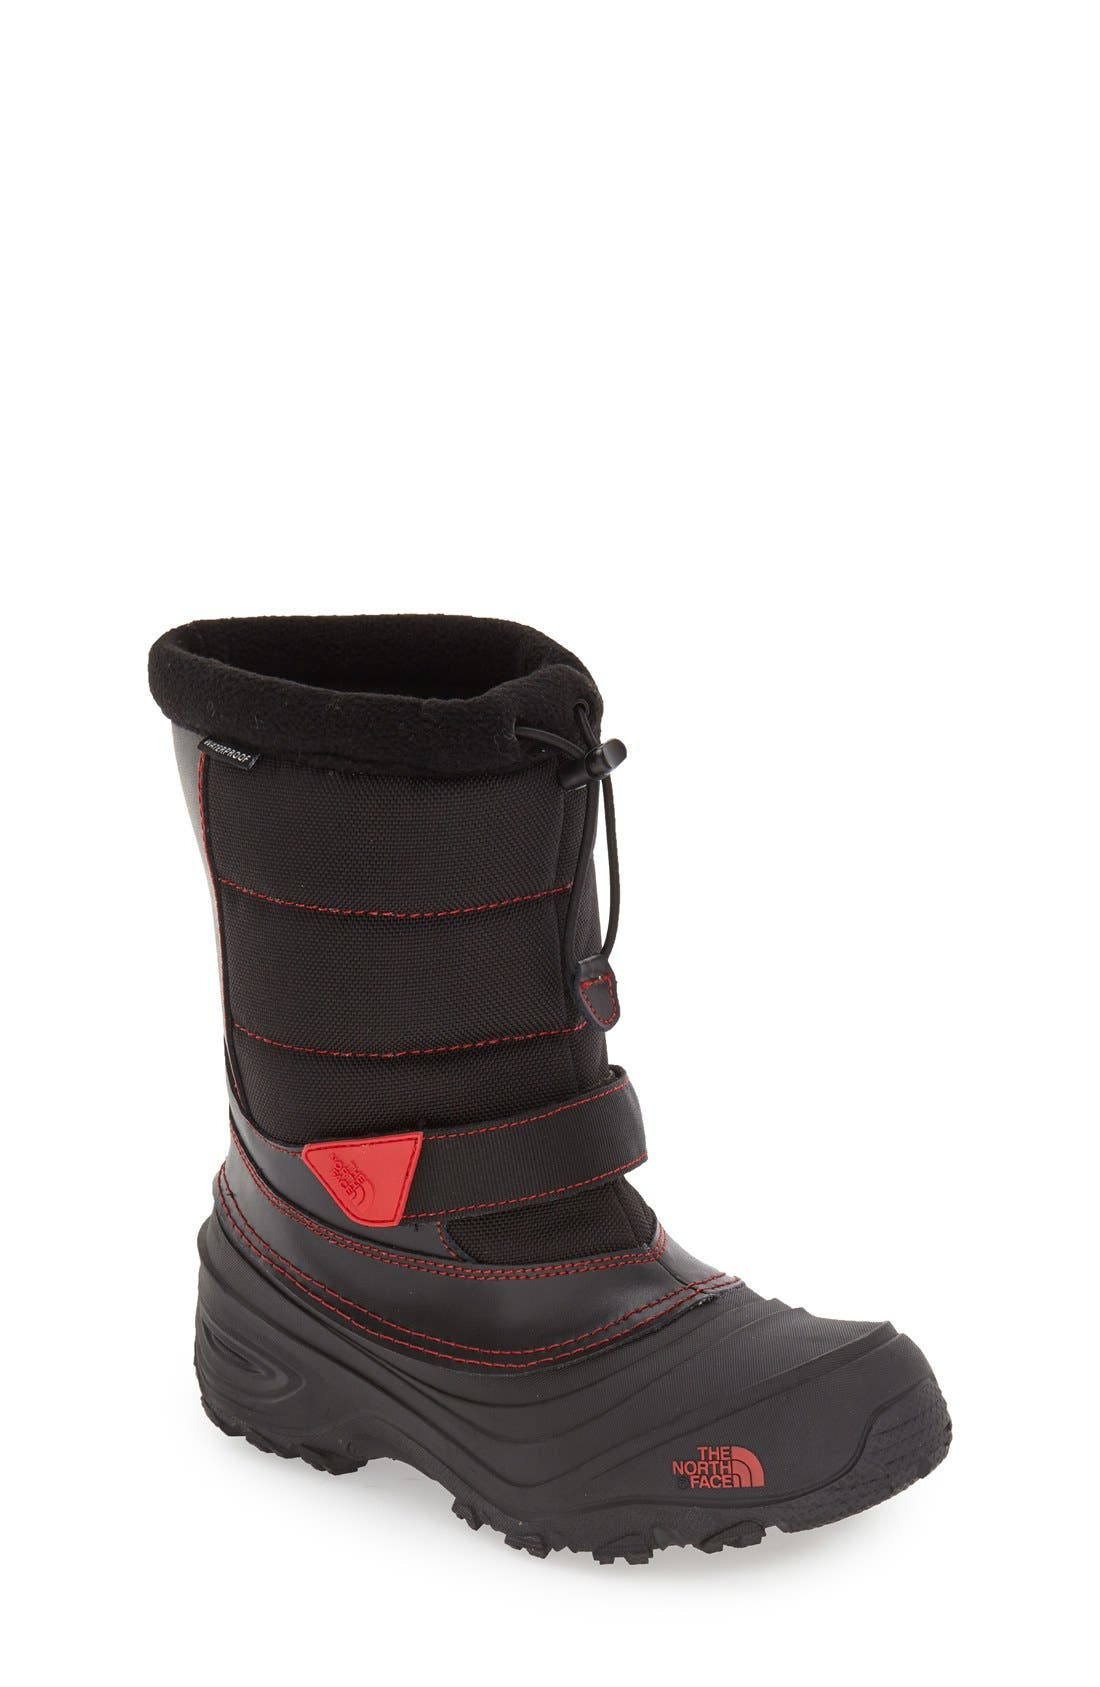 Main Image - The North Face 'Alpenglow Extreme II' Waterproof Snow Boot (Toddler, Little Kid & Big Kid)